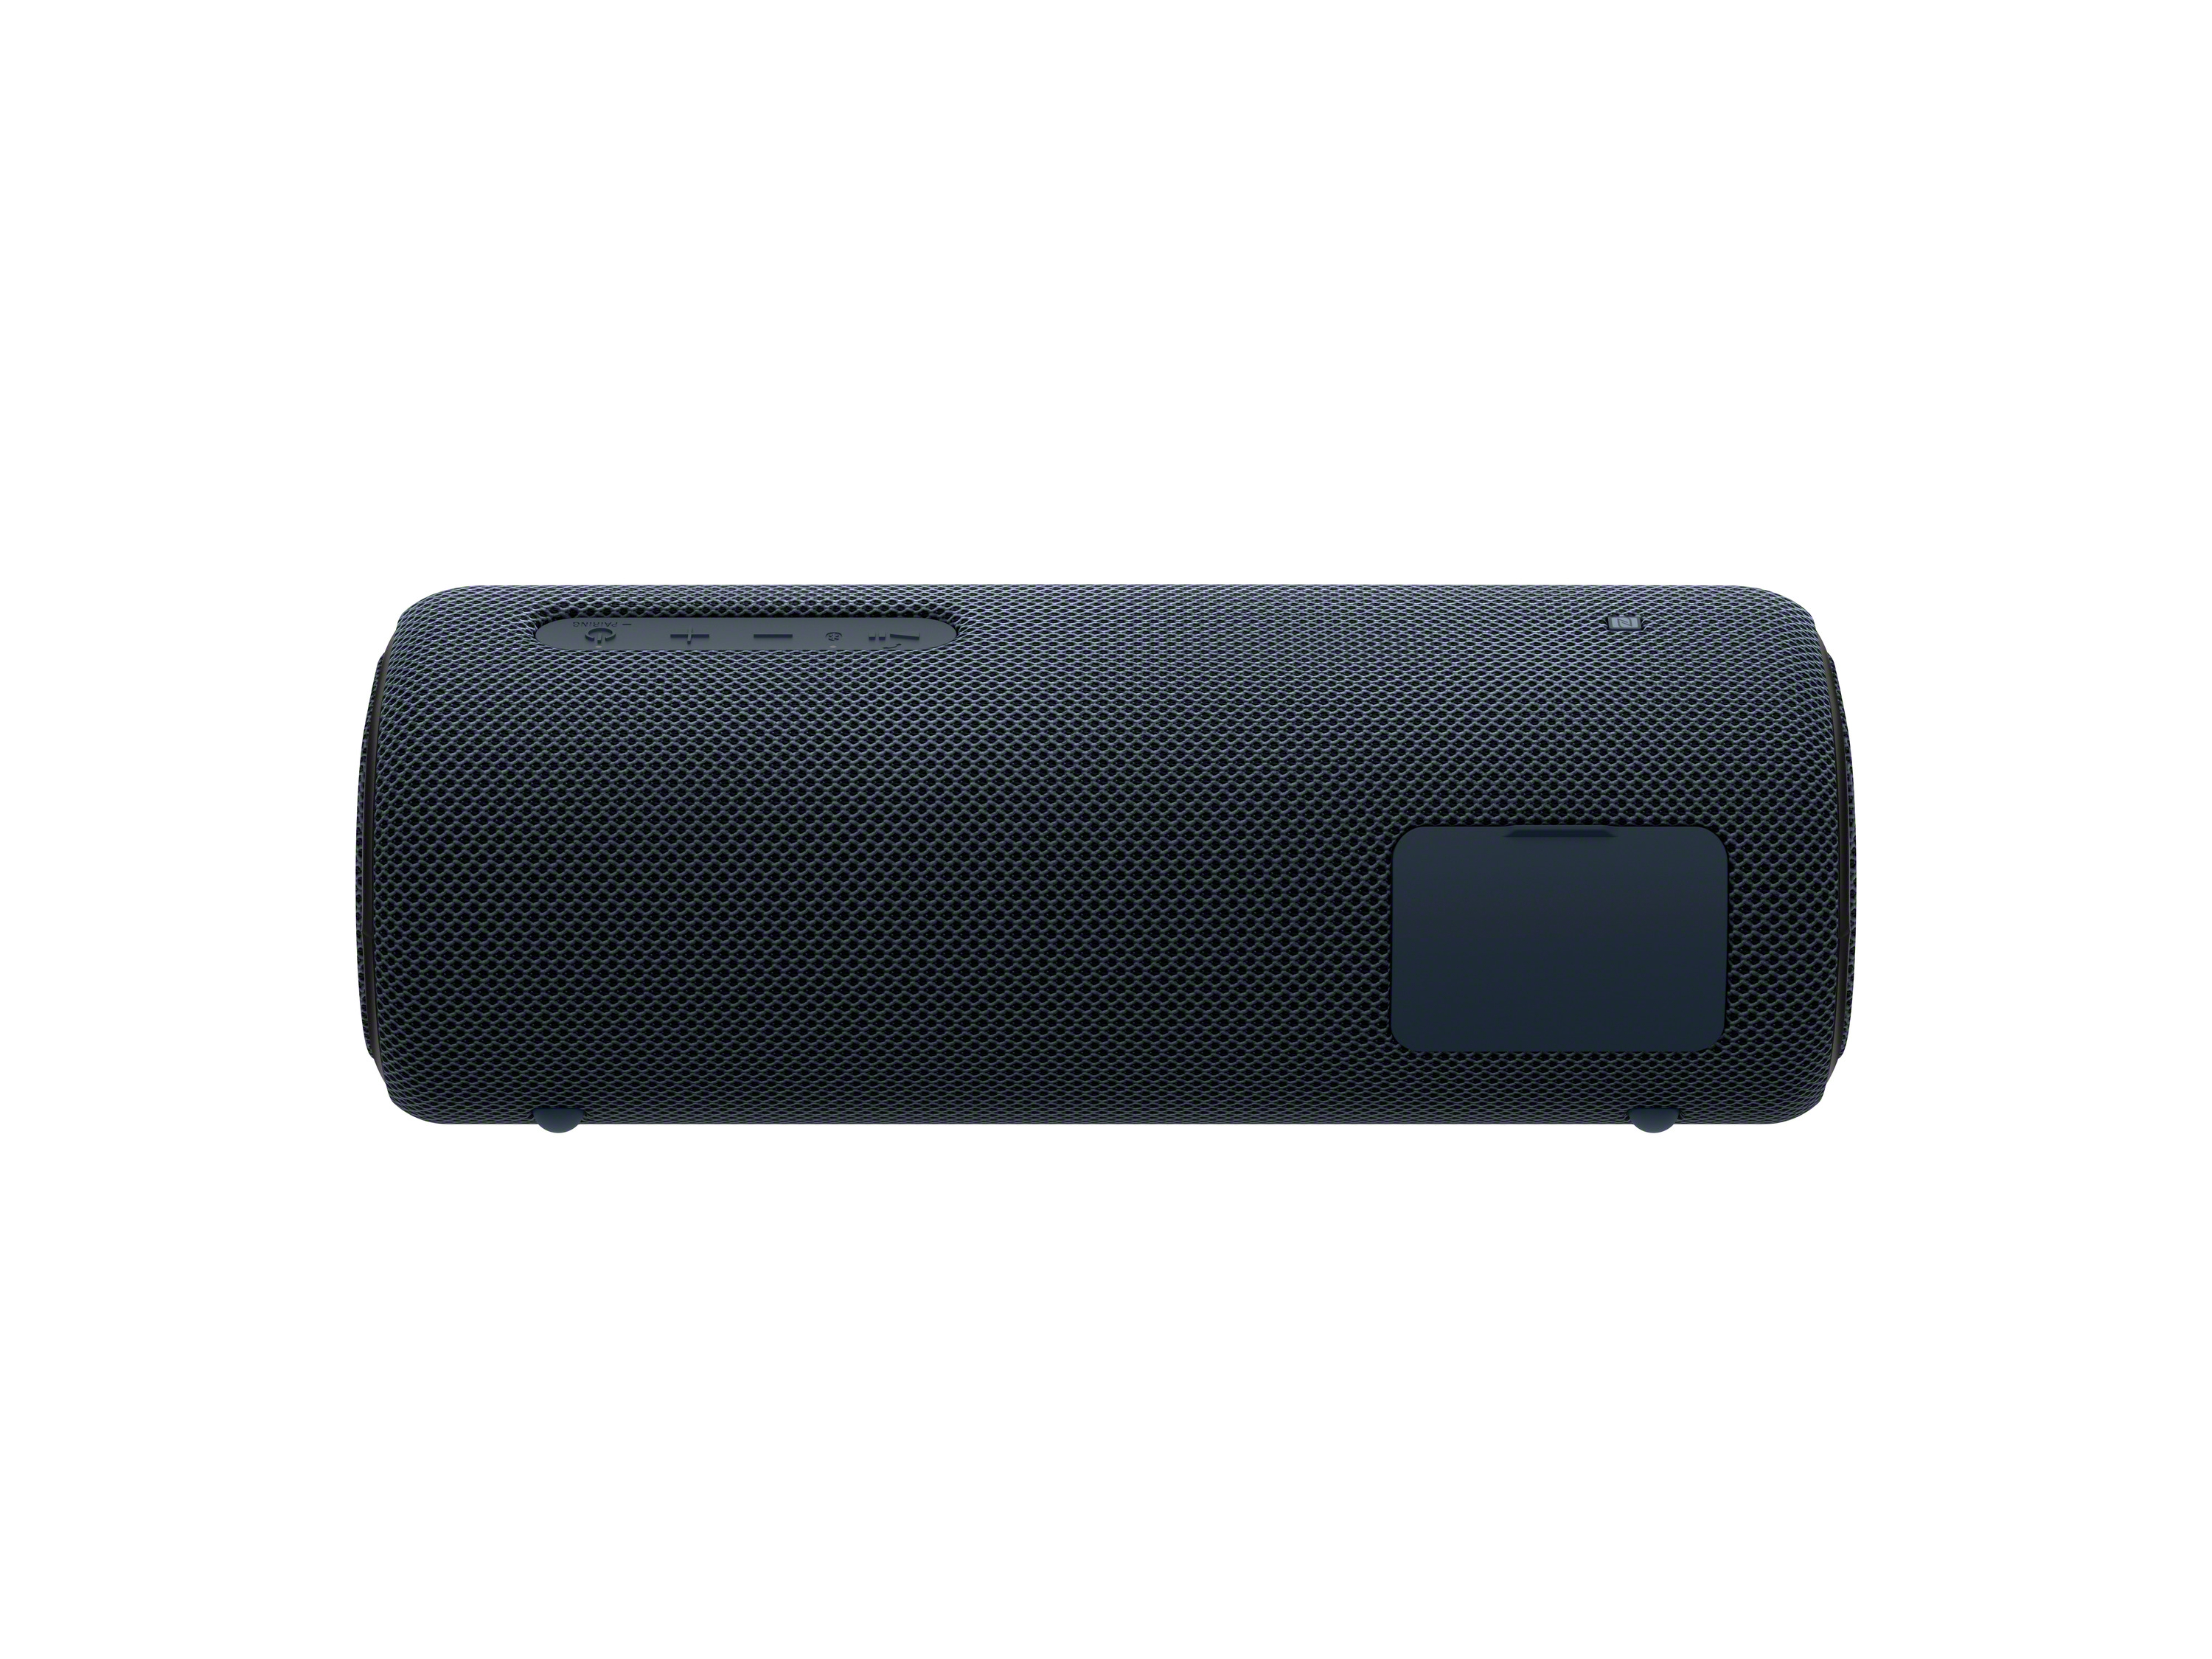 Sony-SRS-XB31-Portable-Wireless-Bluetooth-Speaker